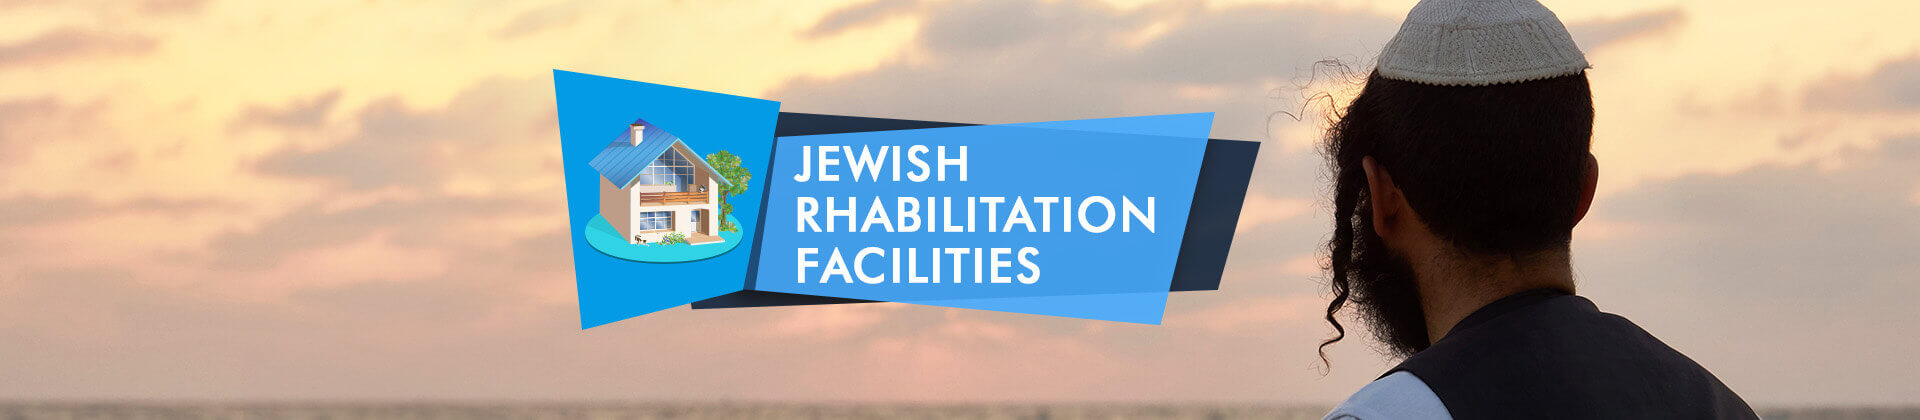 jewish rehabilitation facilities